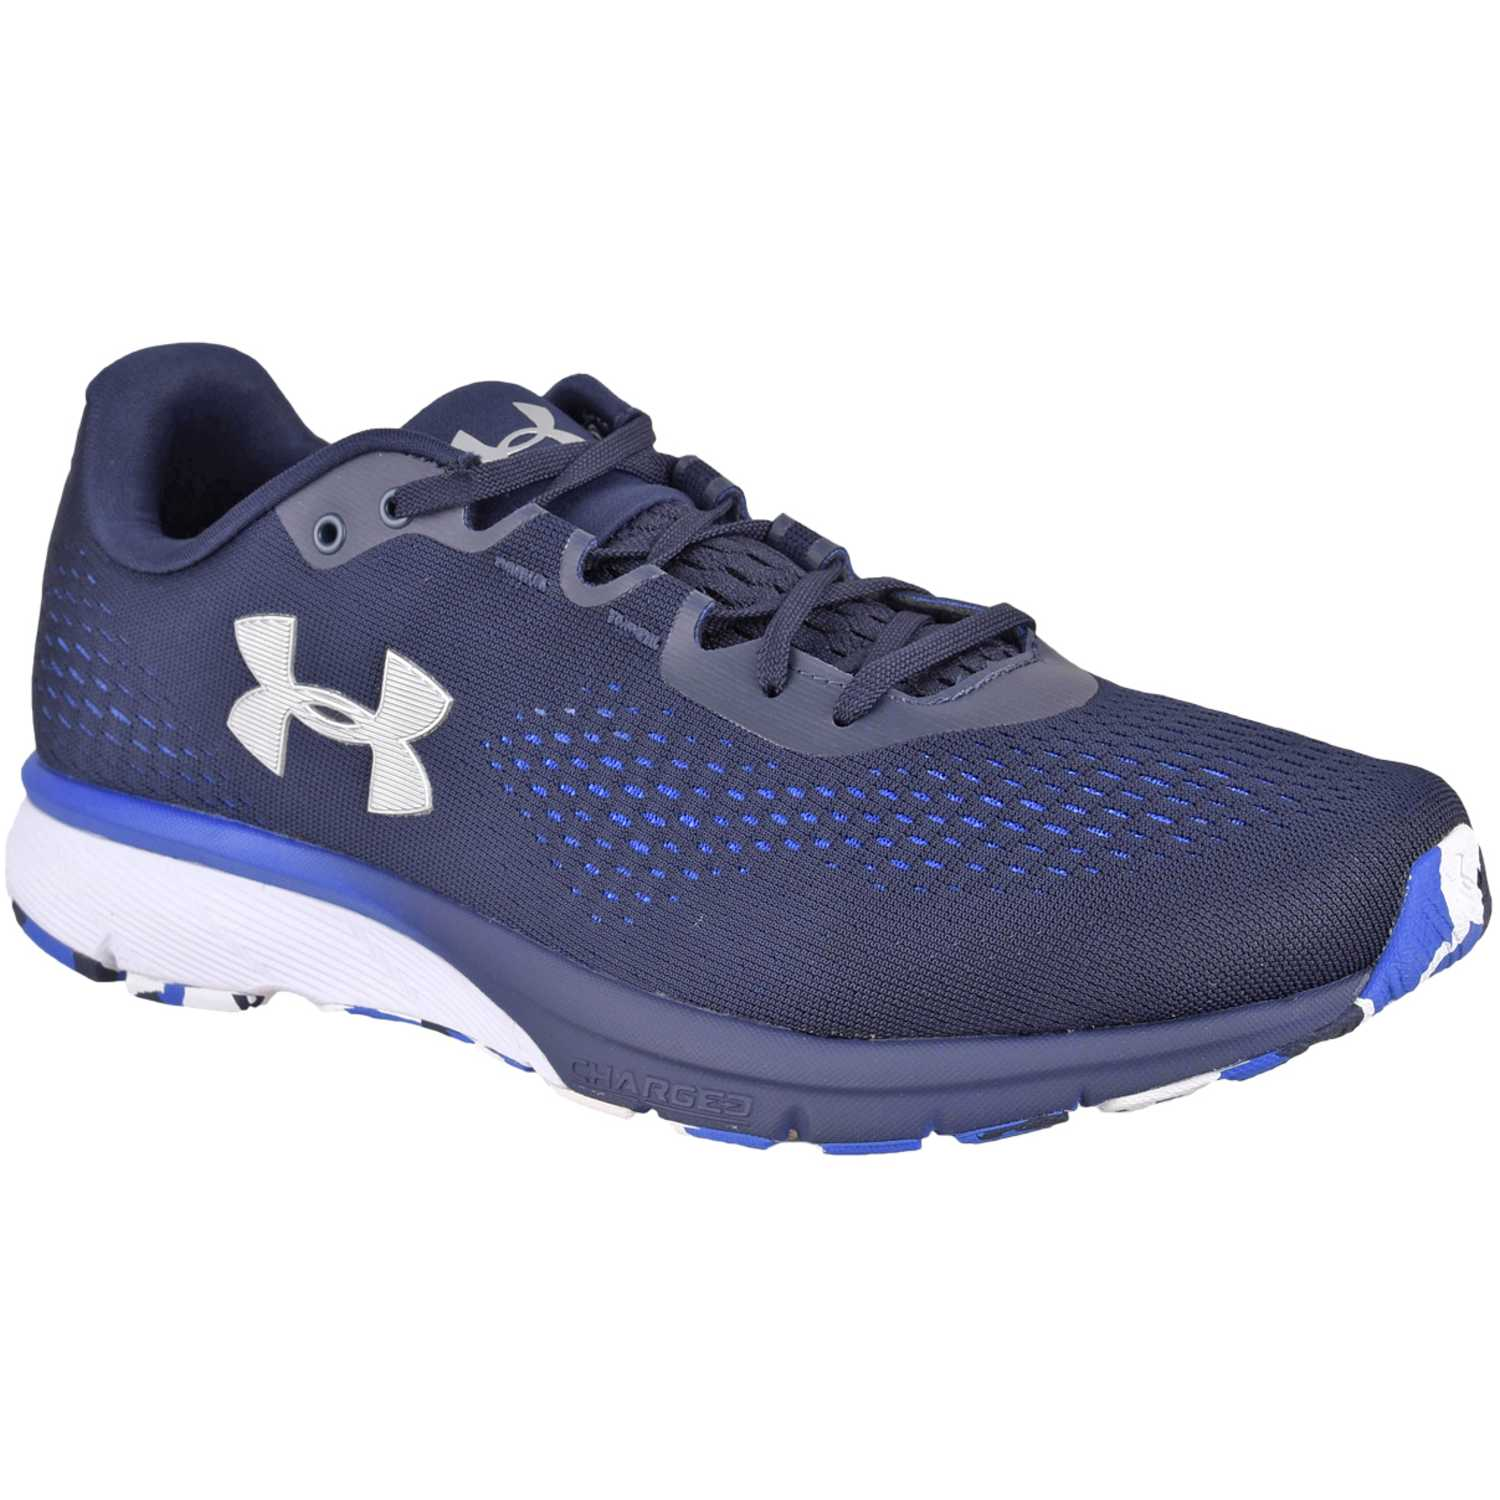 Zapatilla de Hombre Under Armour Azul / blanco ua charged spark